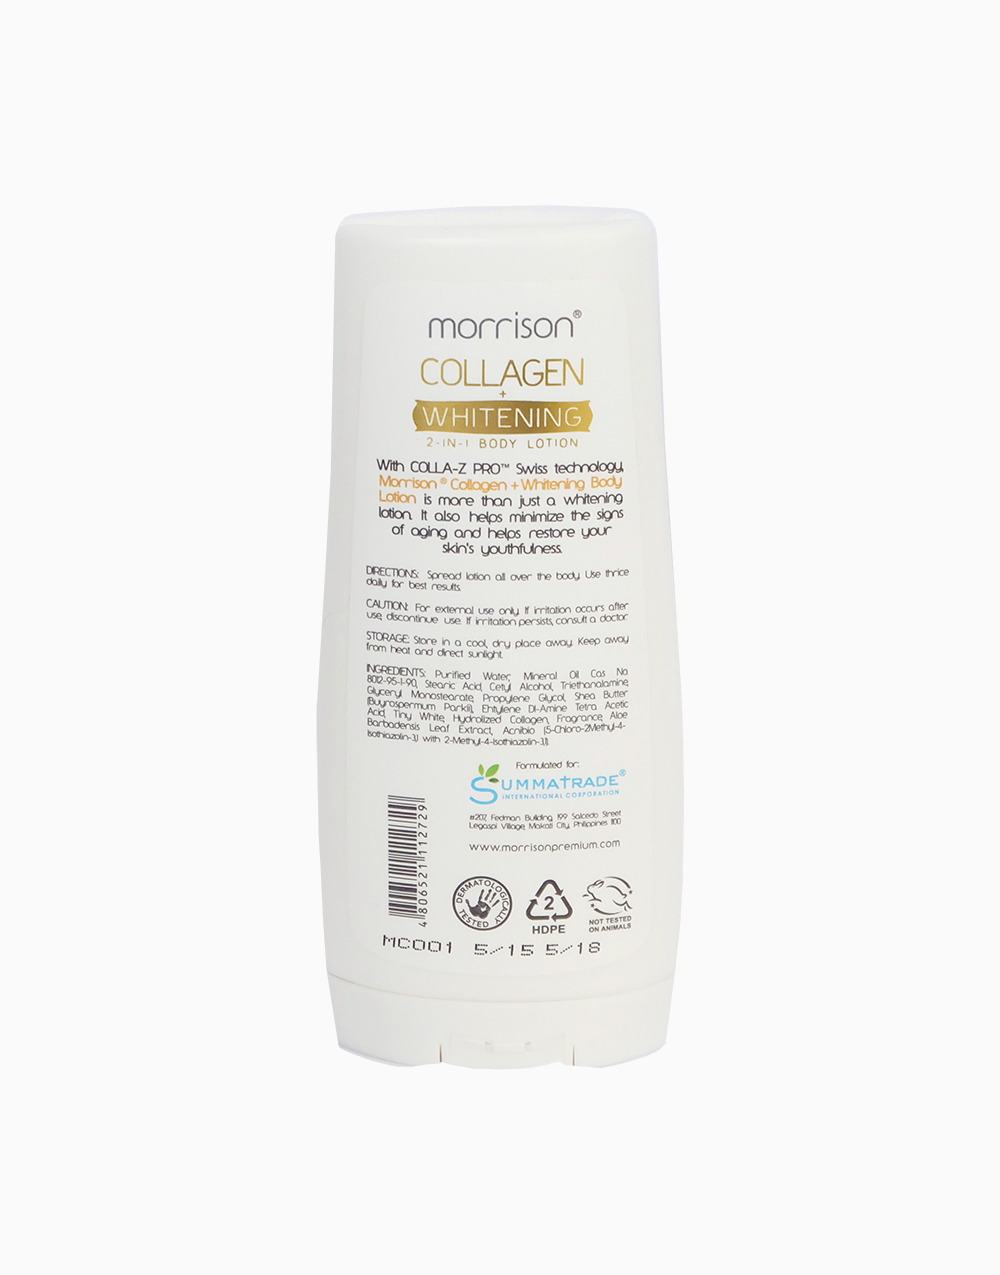 Collagen Whitening 2-in-1 Lotion by Morrison